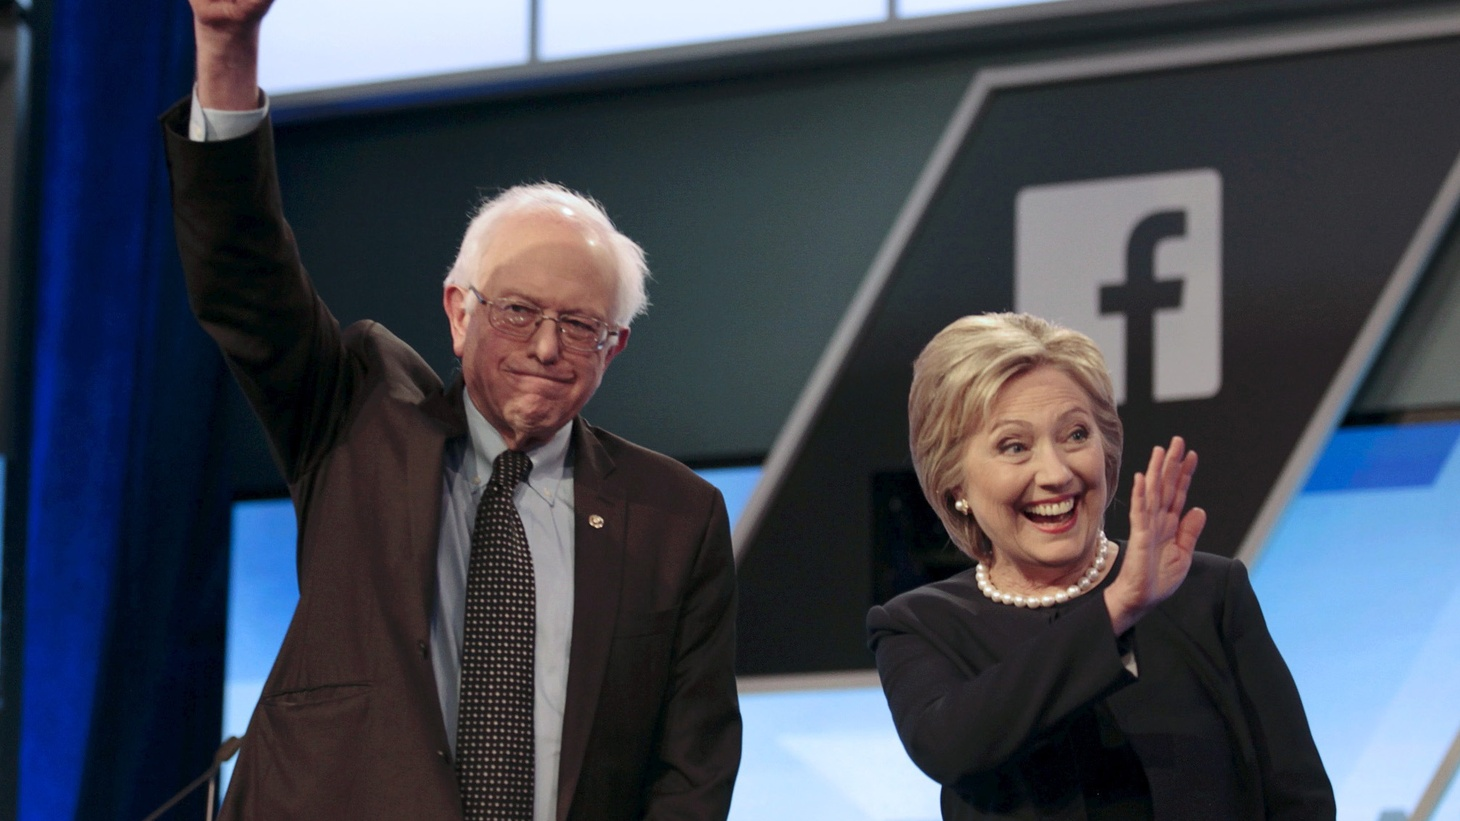 A look at the promises Clinton and Sanders made at Wednesday's Univision debate, from immigration to helping Puerto Rico. The sky-high rates of diabetes and prediabetes in California and Eleanor Roosevelt's unlikely friendship with an African American woman.